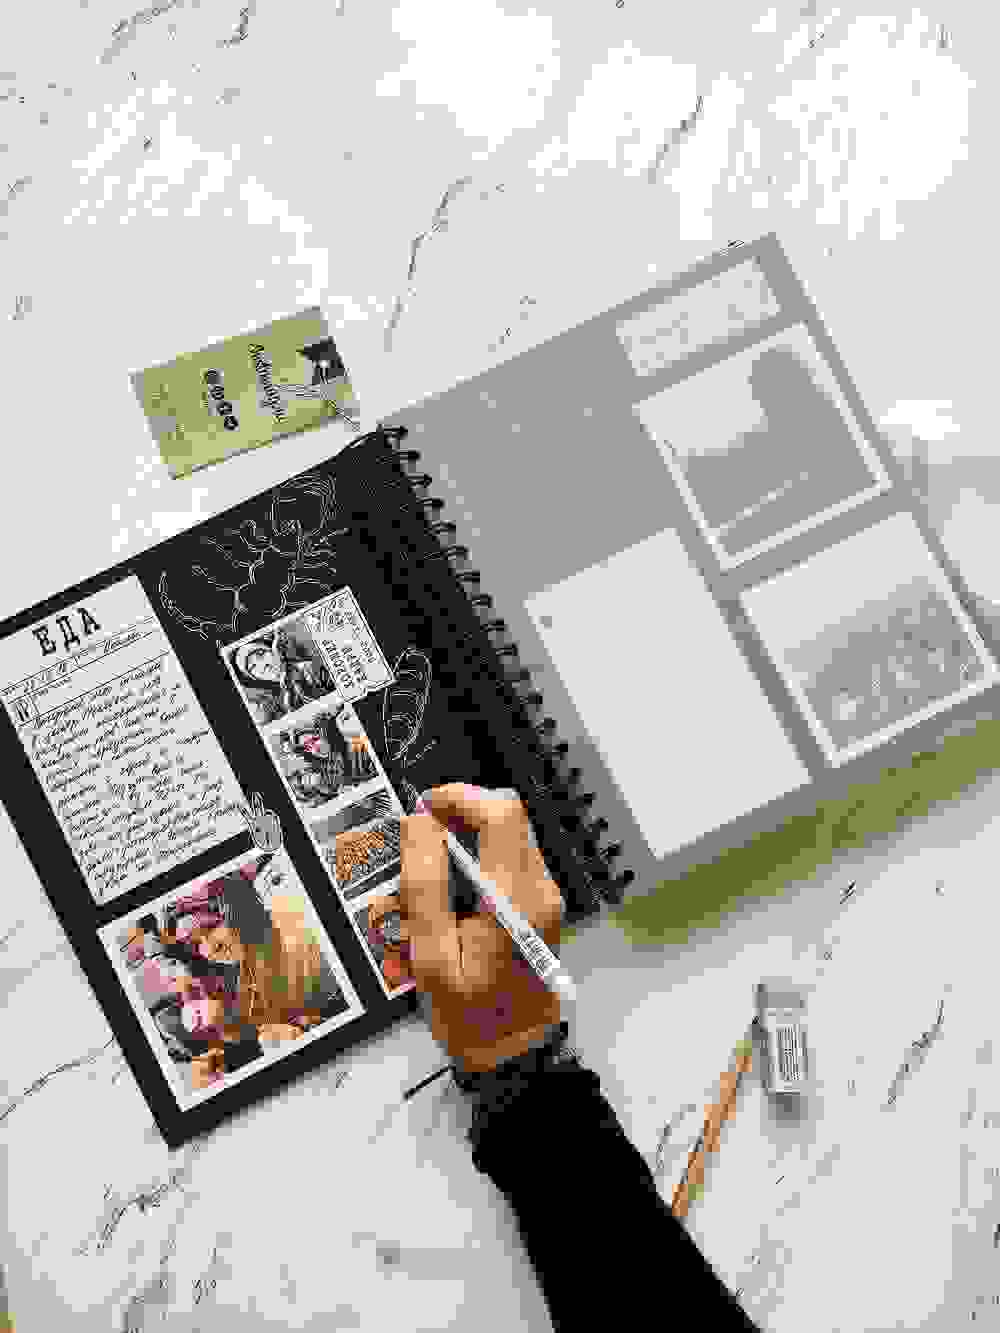 Scrapbooking is fun and good for the mind | Source: etsy.com